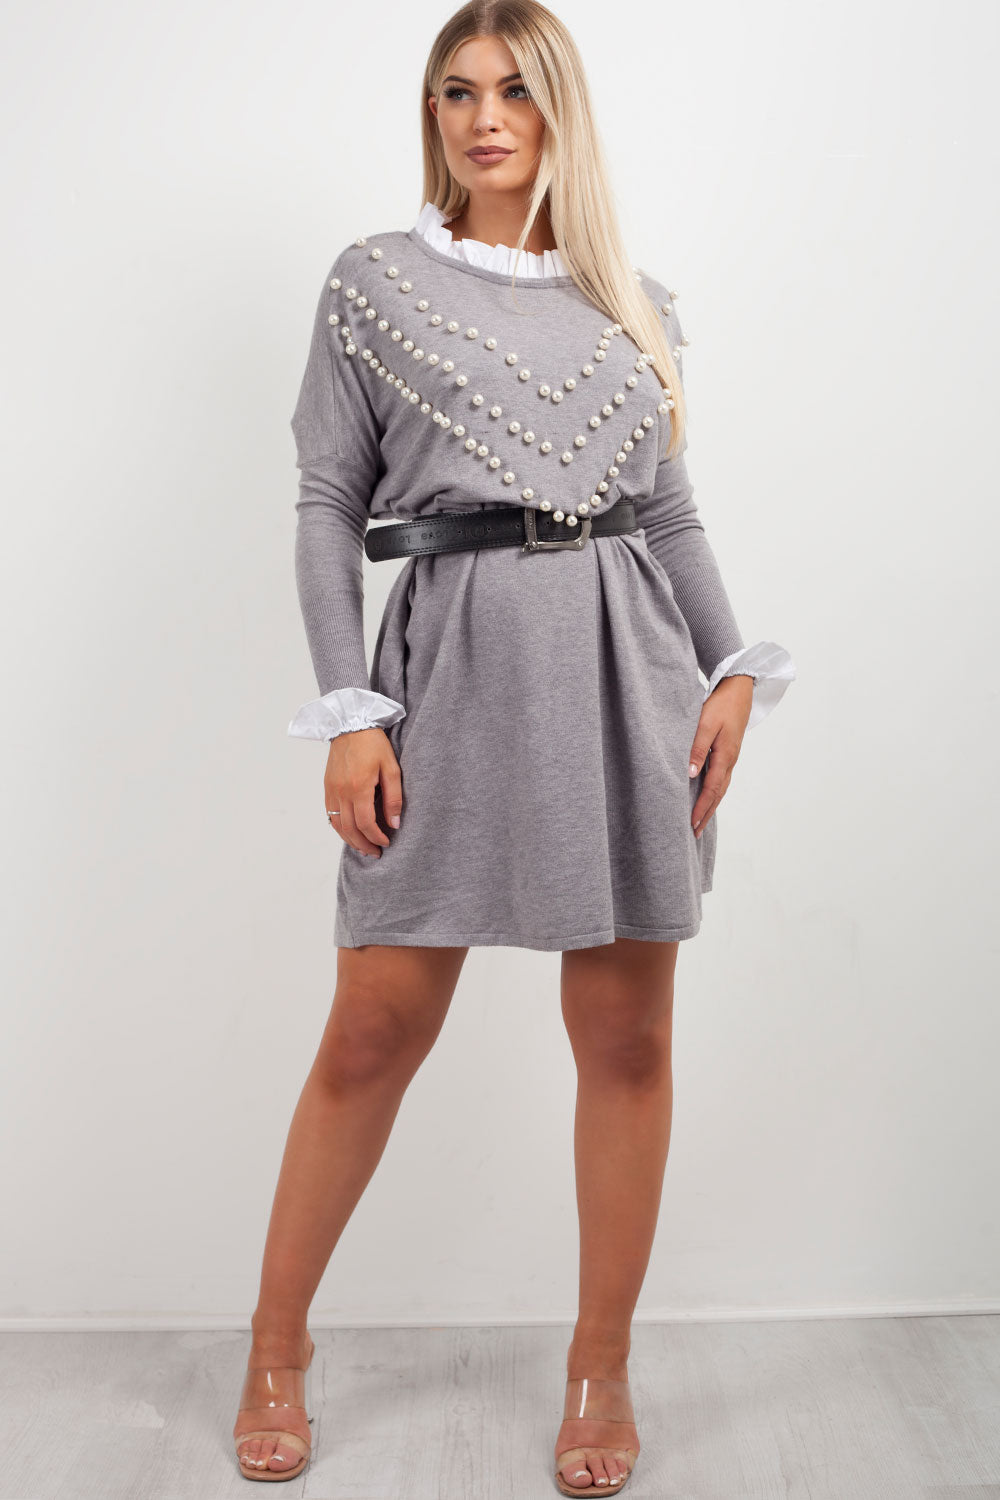 pearl detail grey jumper dress